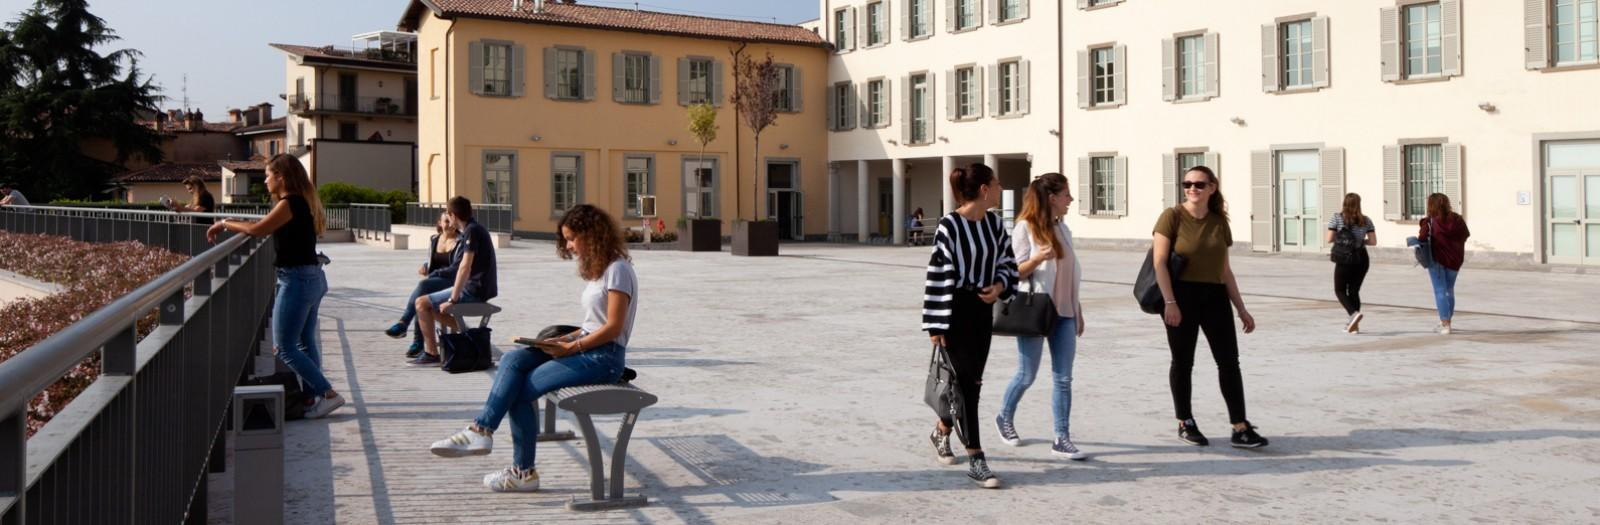 Students at Pignolo's roof